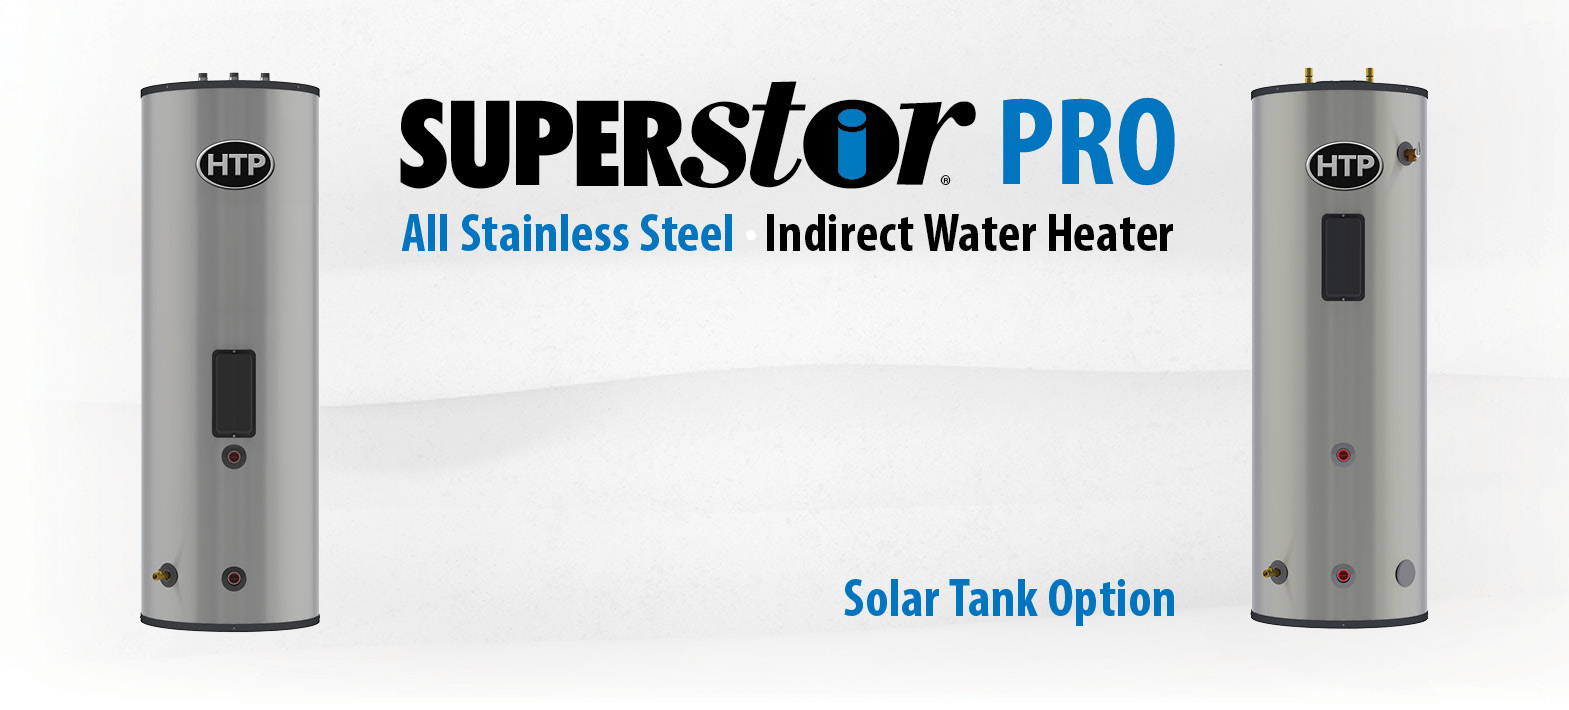 Htp Superstor Pro Indirect Water Heater